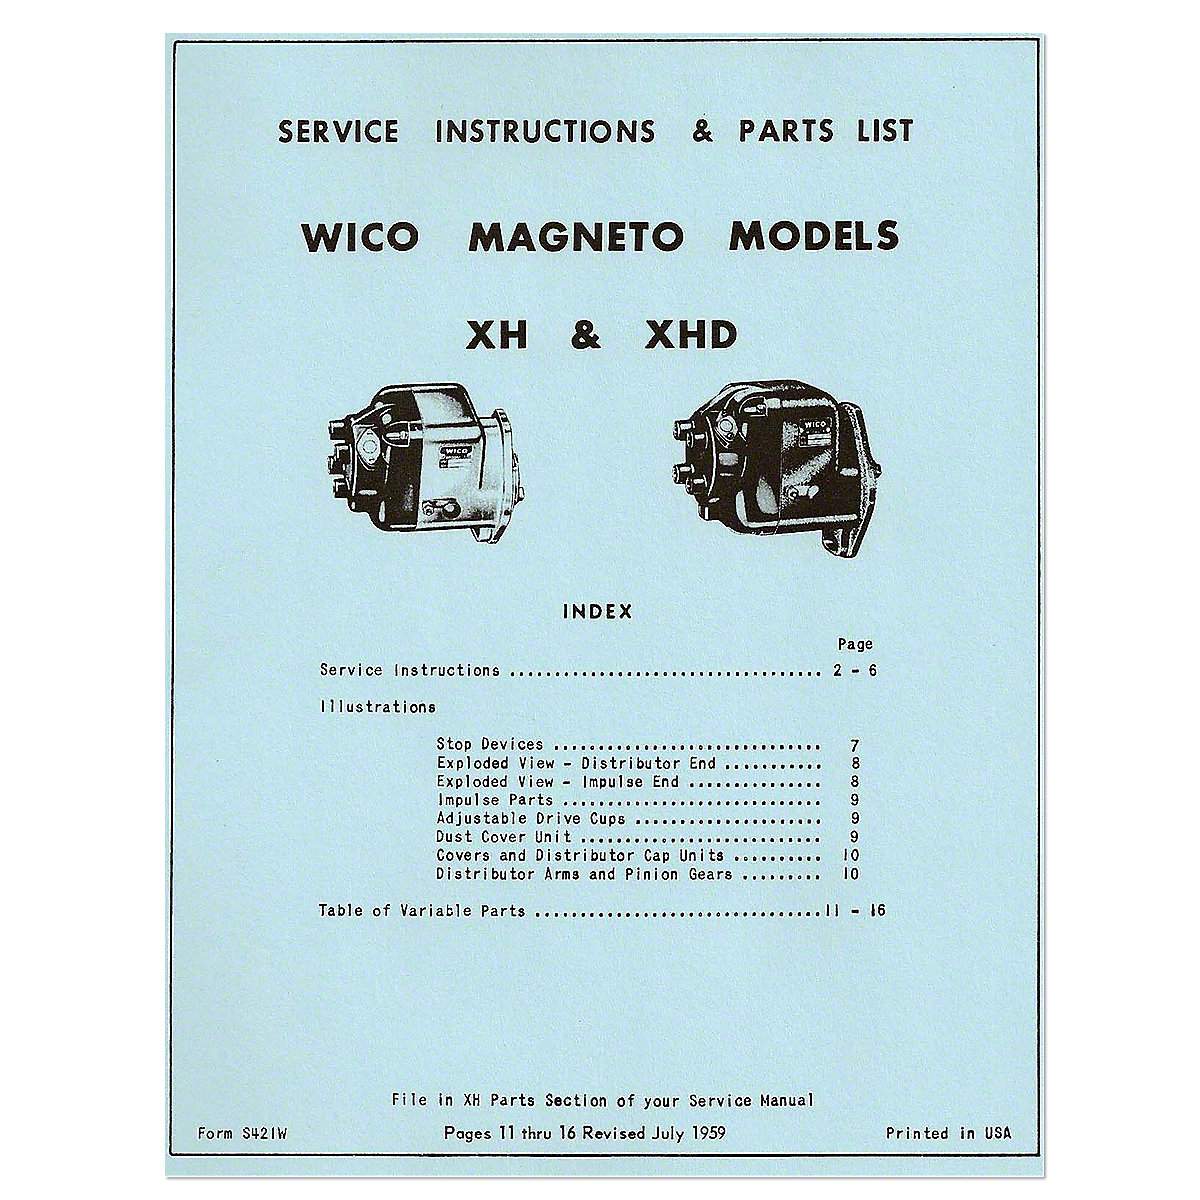 Wico Magneto Basic Repair Kit Abc3723 Ford Xh Wiring Diagram And Xhd Service Instructions Parts List 1959